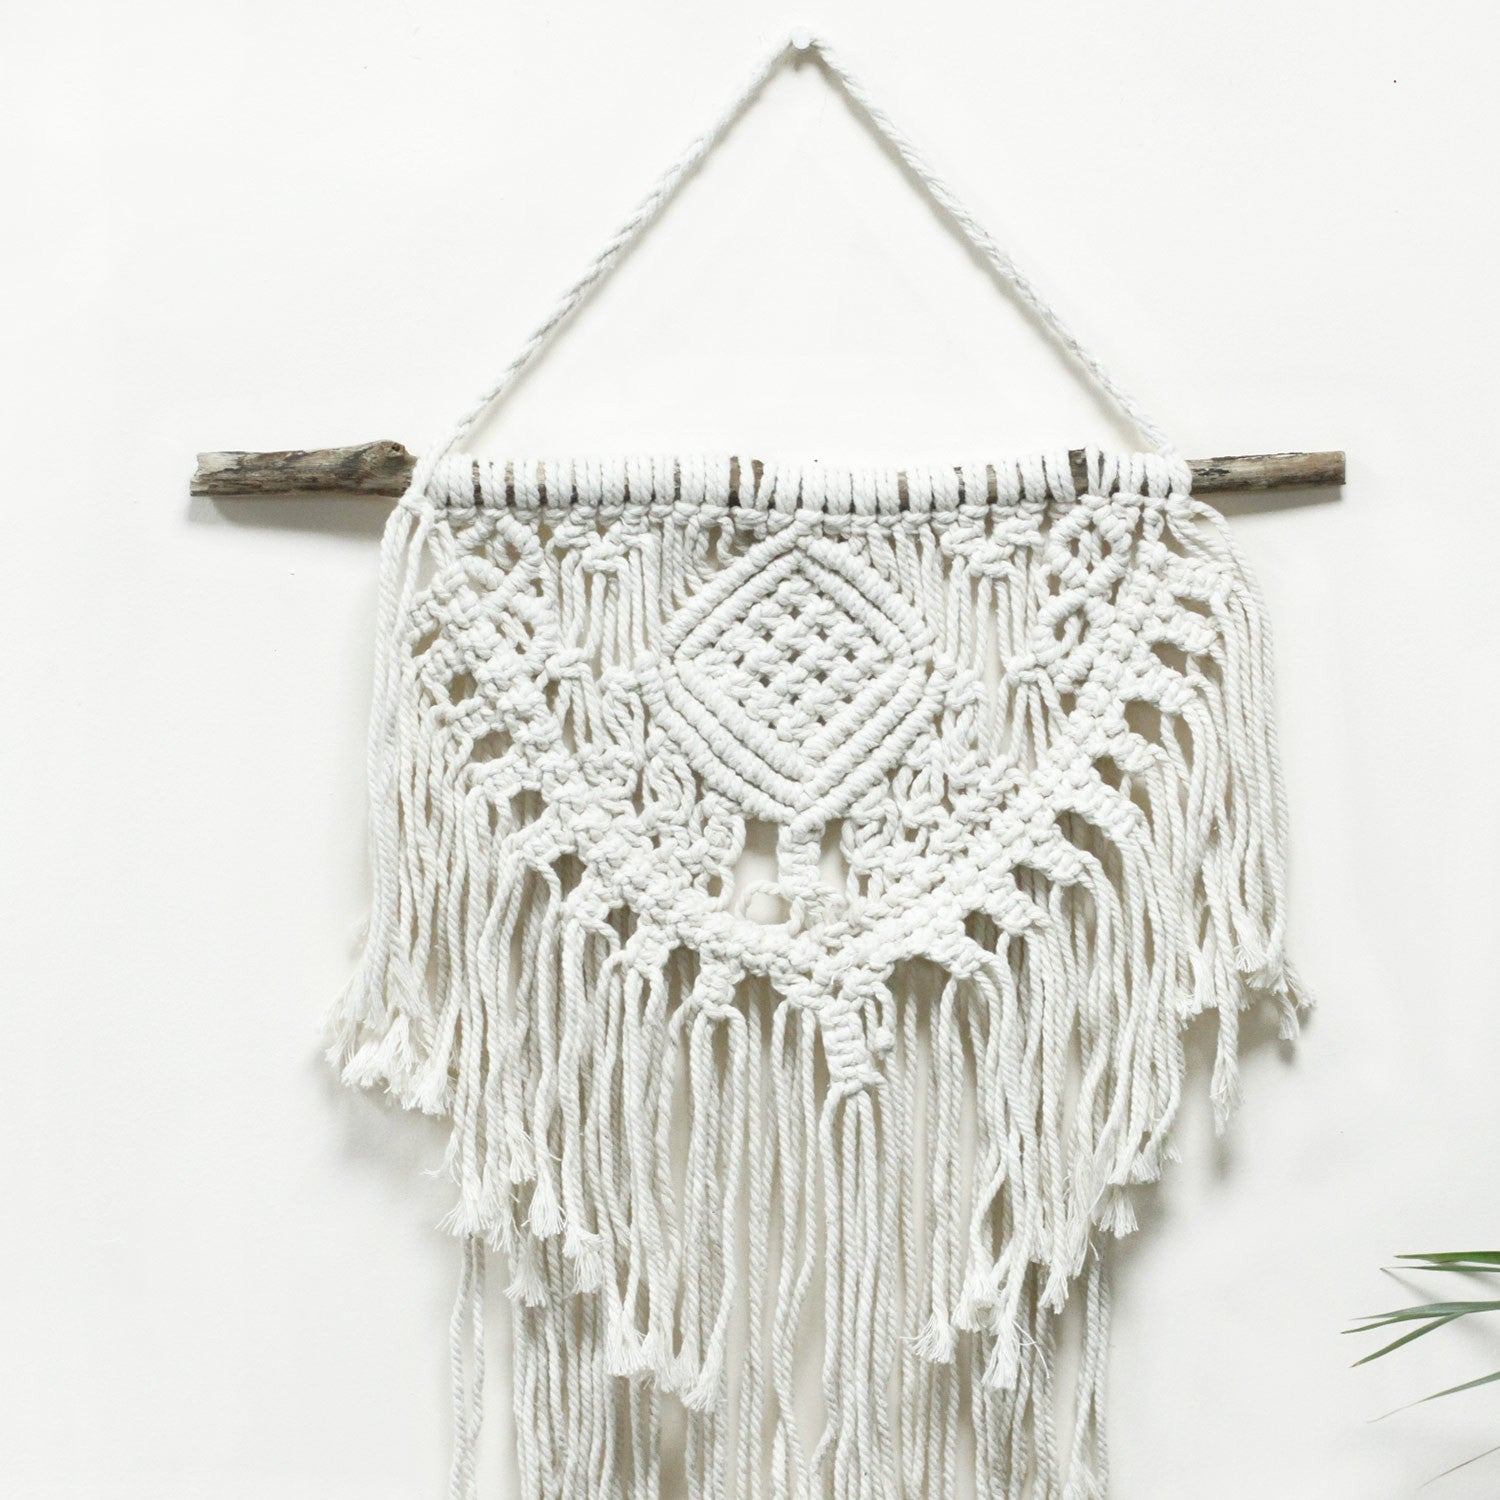 Home & Heart Macrame Wall Hanging - Ellie J Shoppe